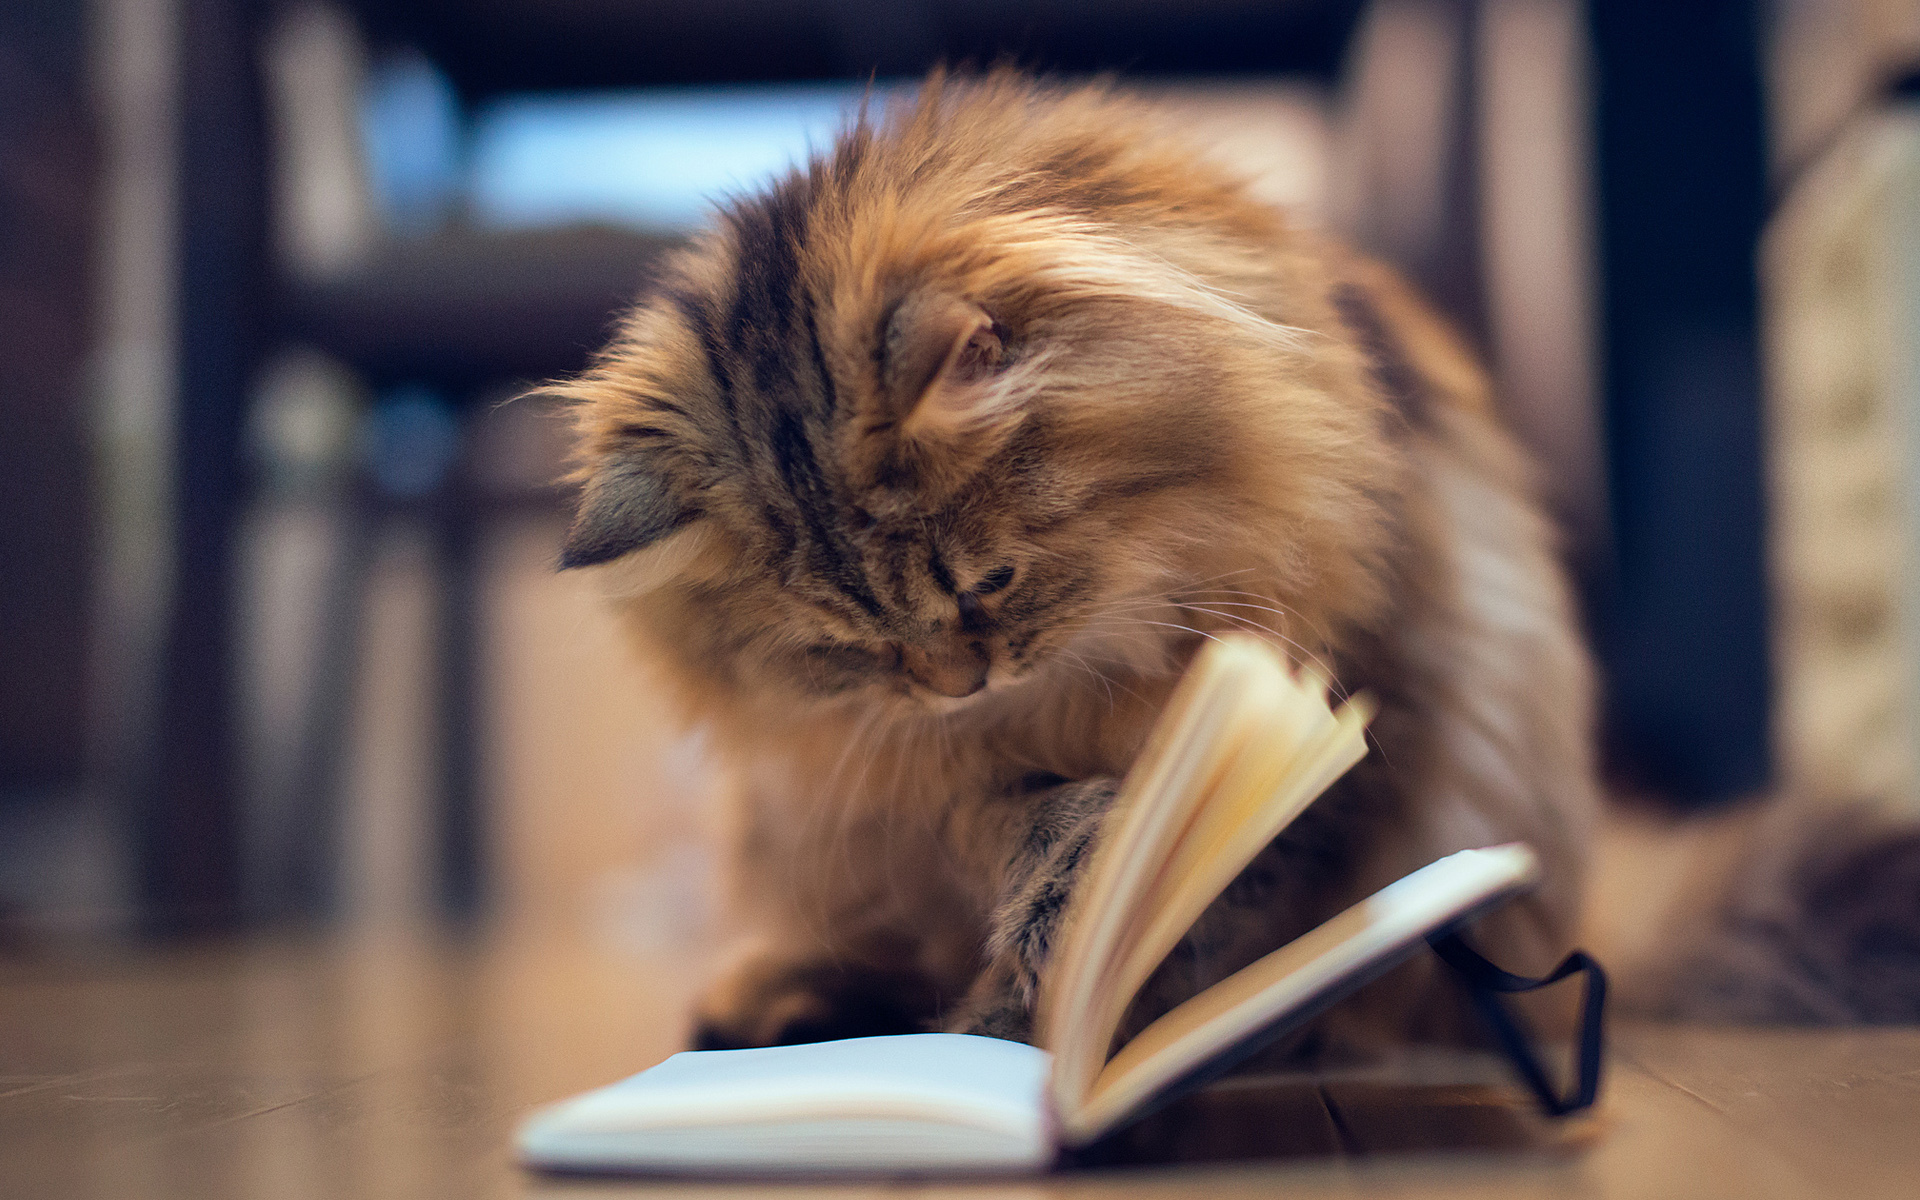 smart_kitty_reading_book.jpg